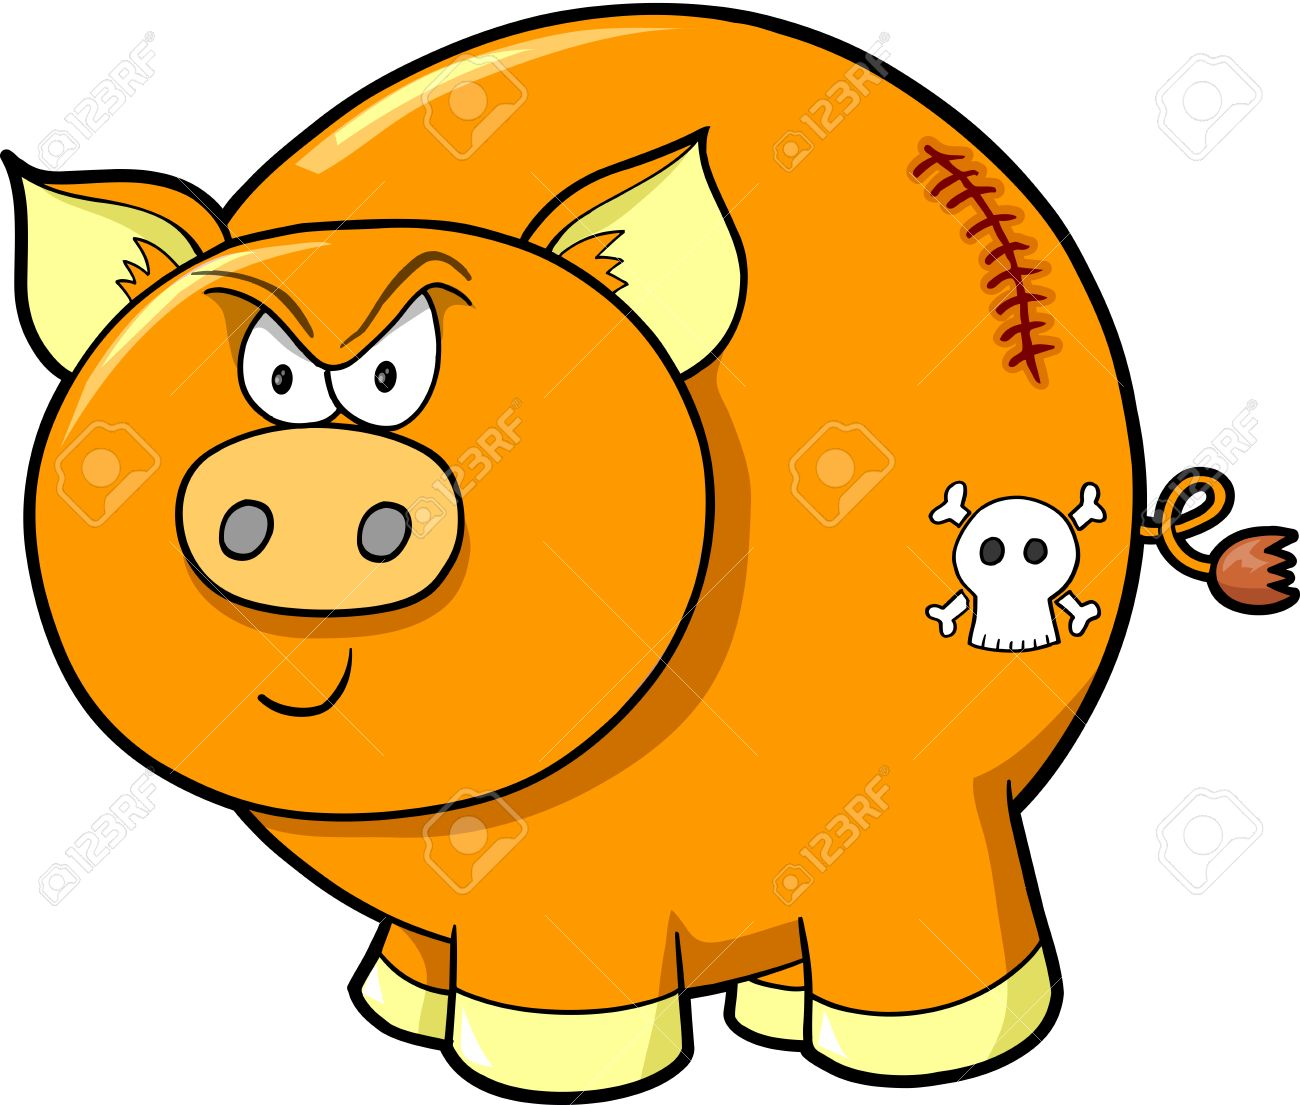 Tough Angry Farm Pig Vector Illustration Art Stock Vector - 13164813